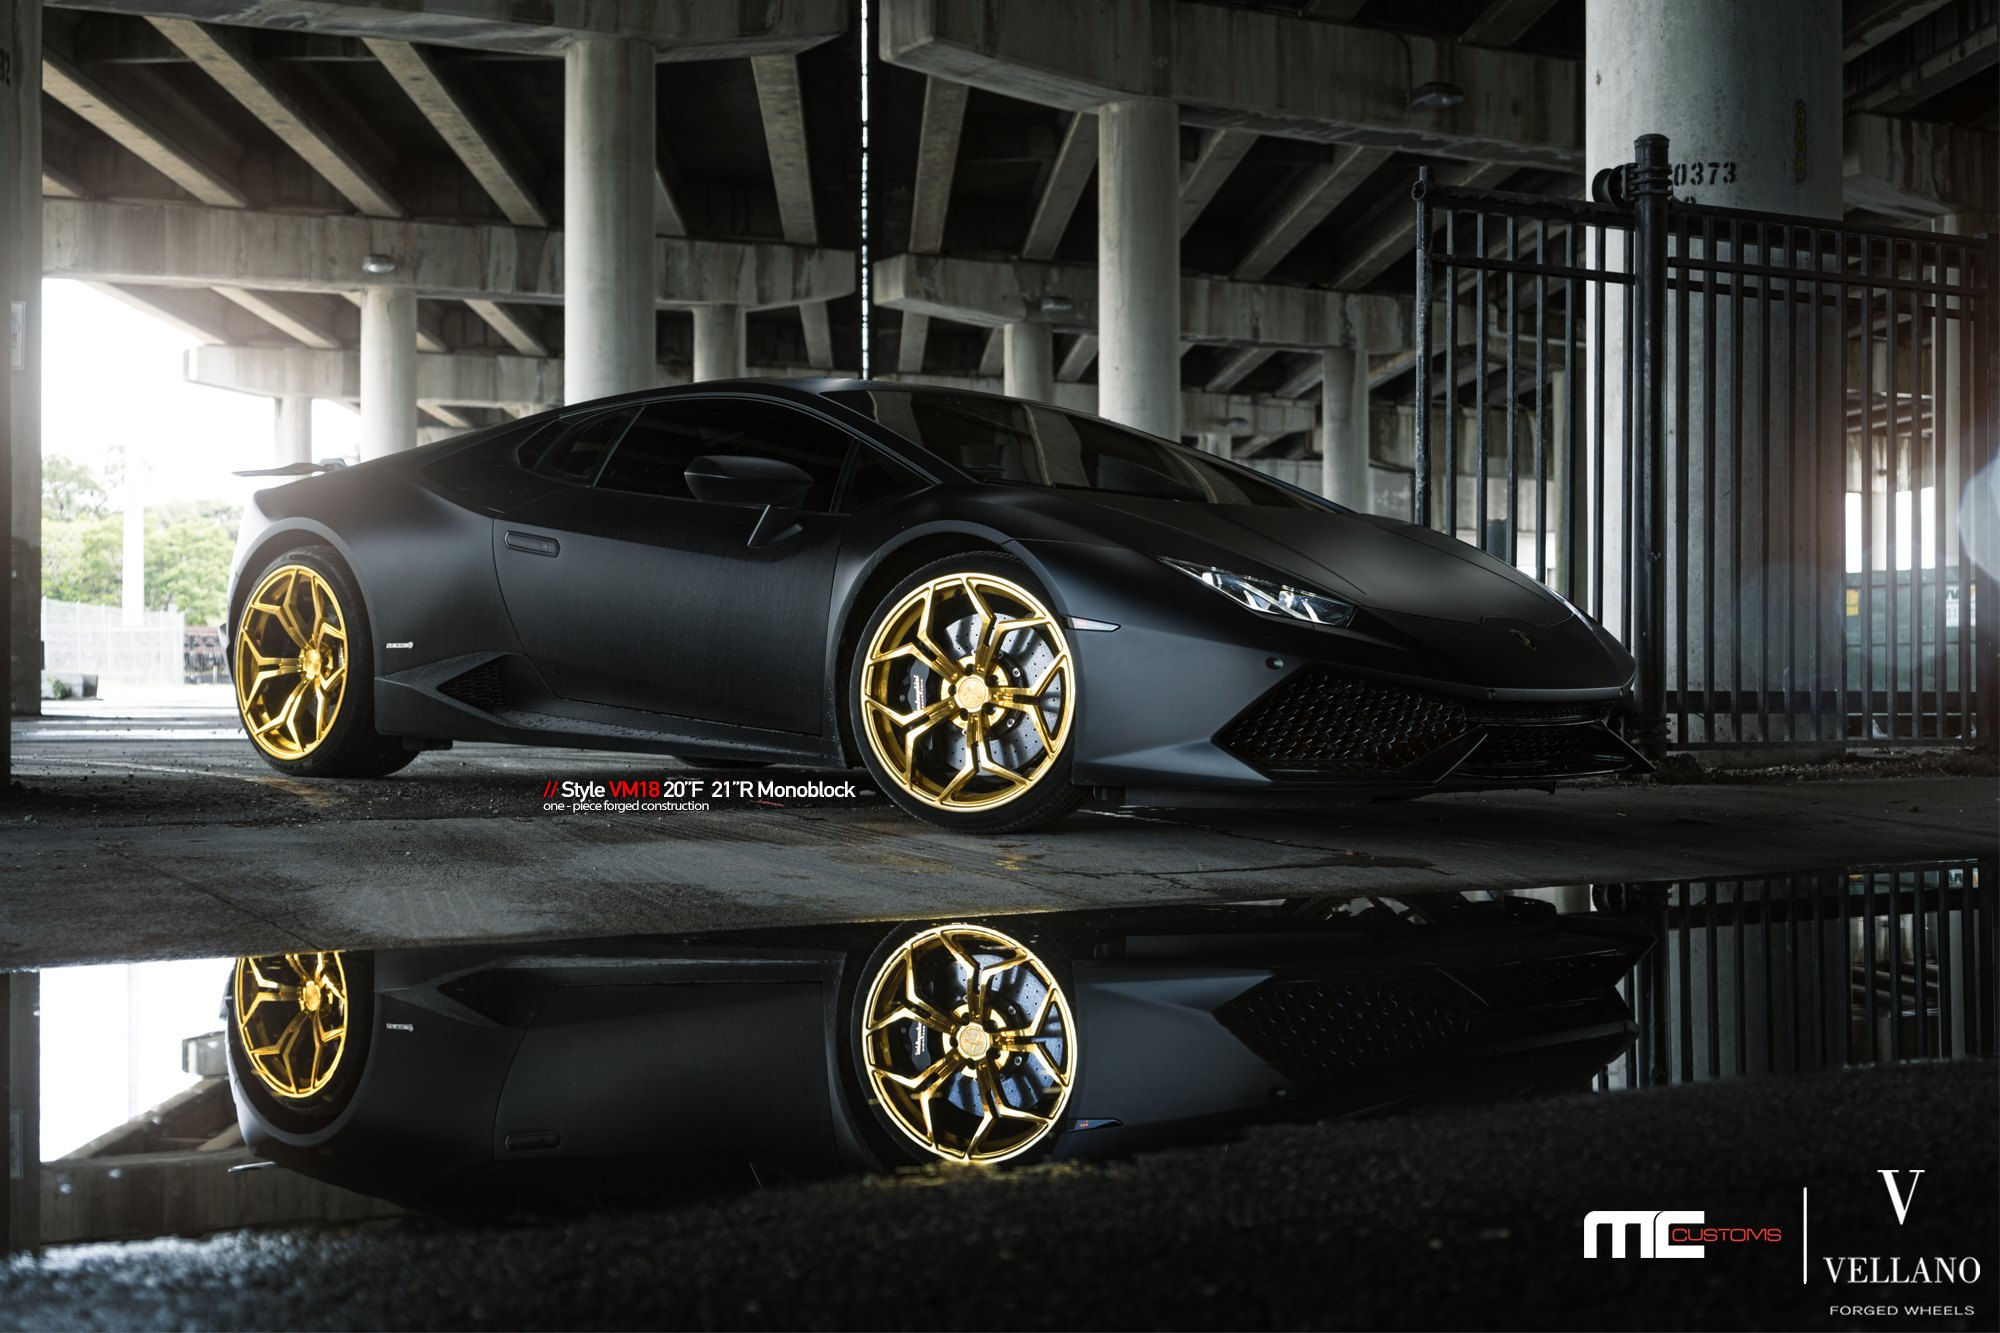 Beast Revealed Black Huracan With Led Headlights And Gold Wheels